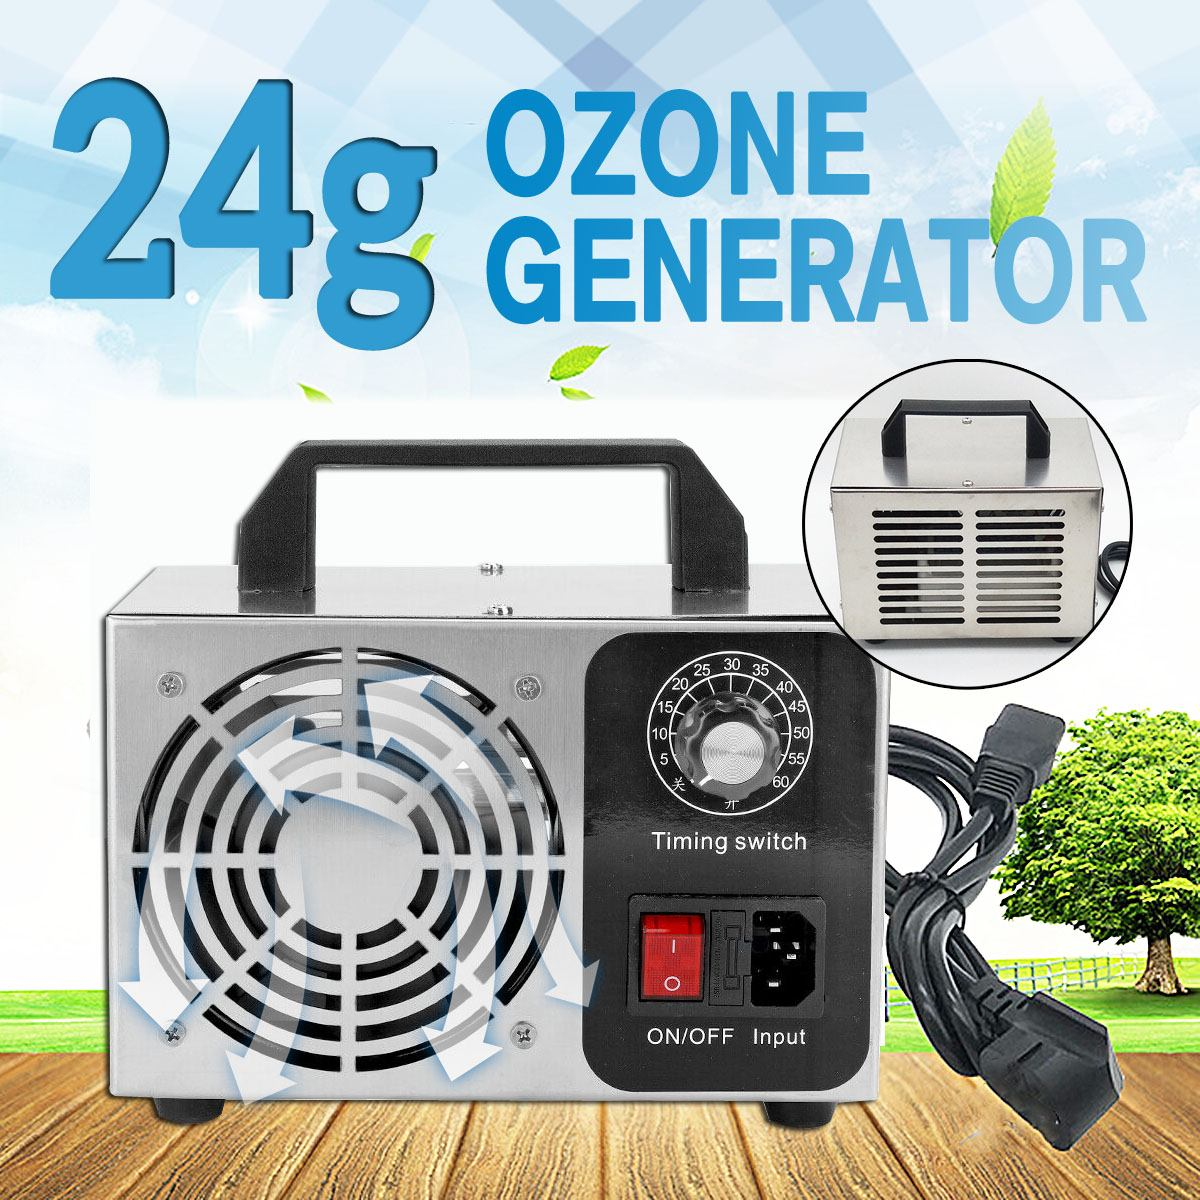 10g/24g Ozone Generator Ozonator Machine Home Air Purifiers Air Cleaner Portable O3 Ozon Generator Ozanizer with Timer Control